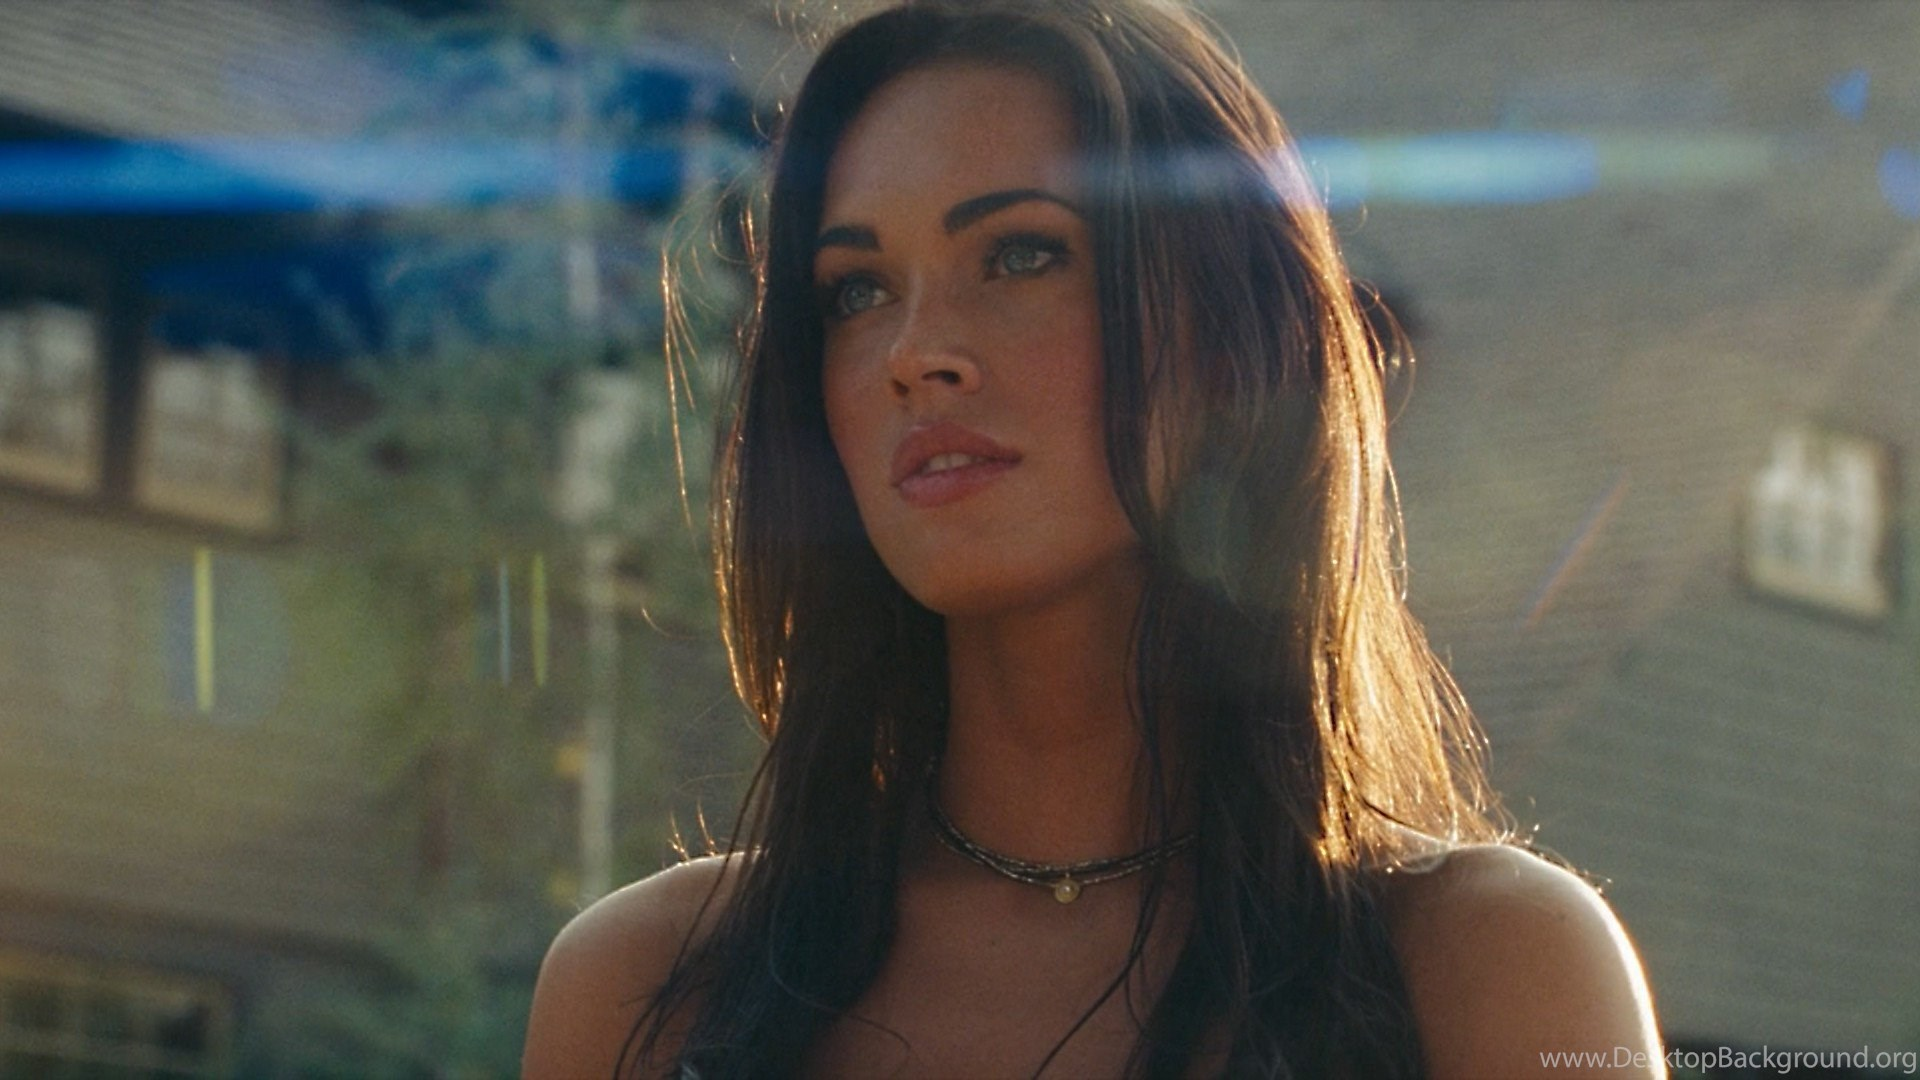 Megan Fox Transformers Desktop Background